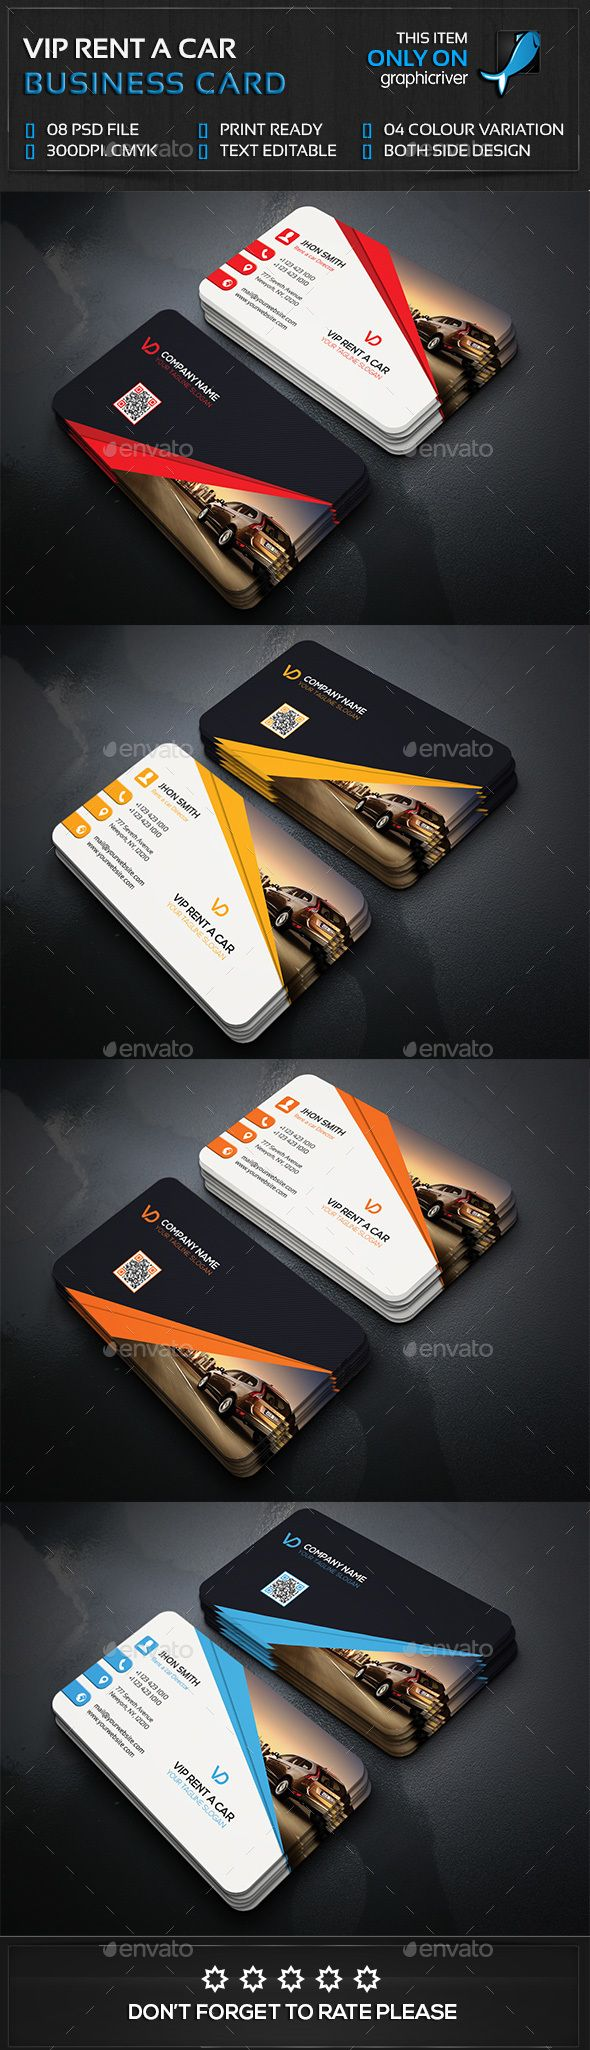 12 Best Awesome Business Cards Images On Pinterest Carte De Visite